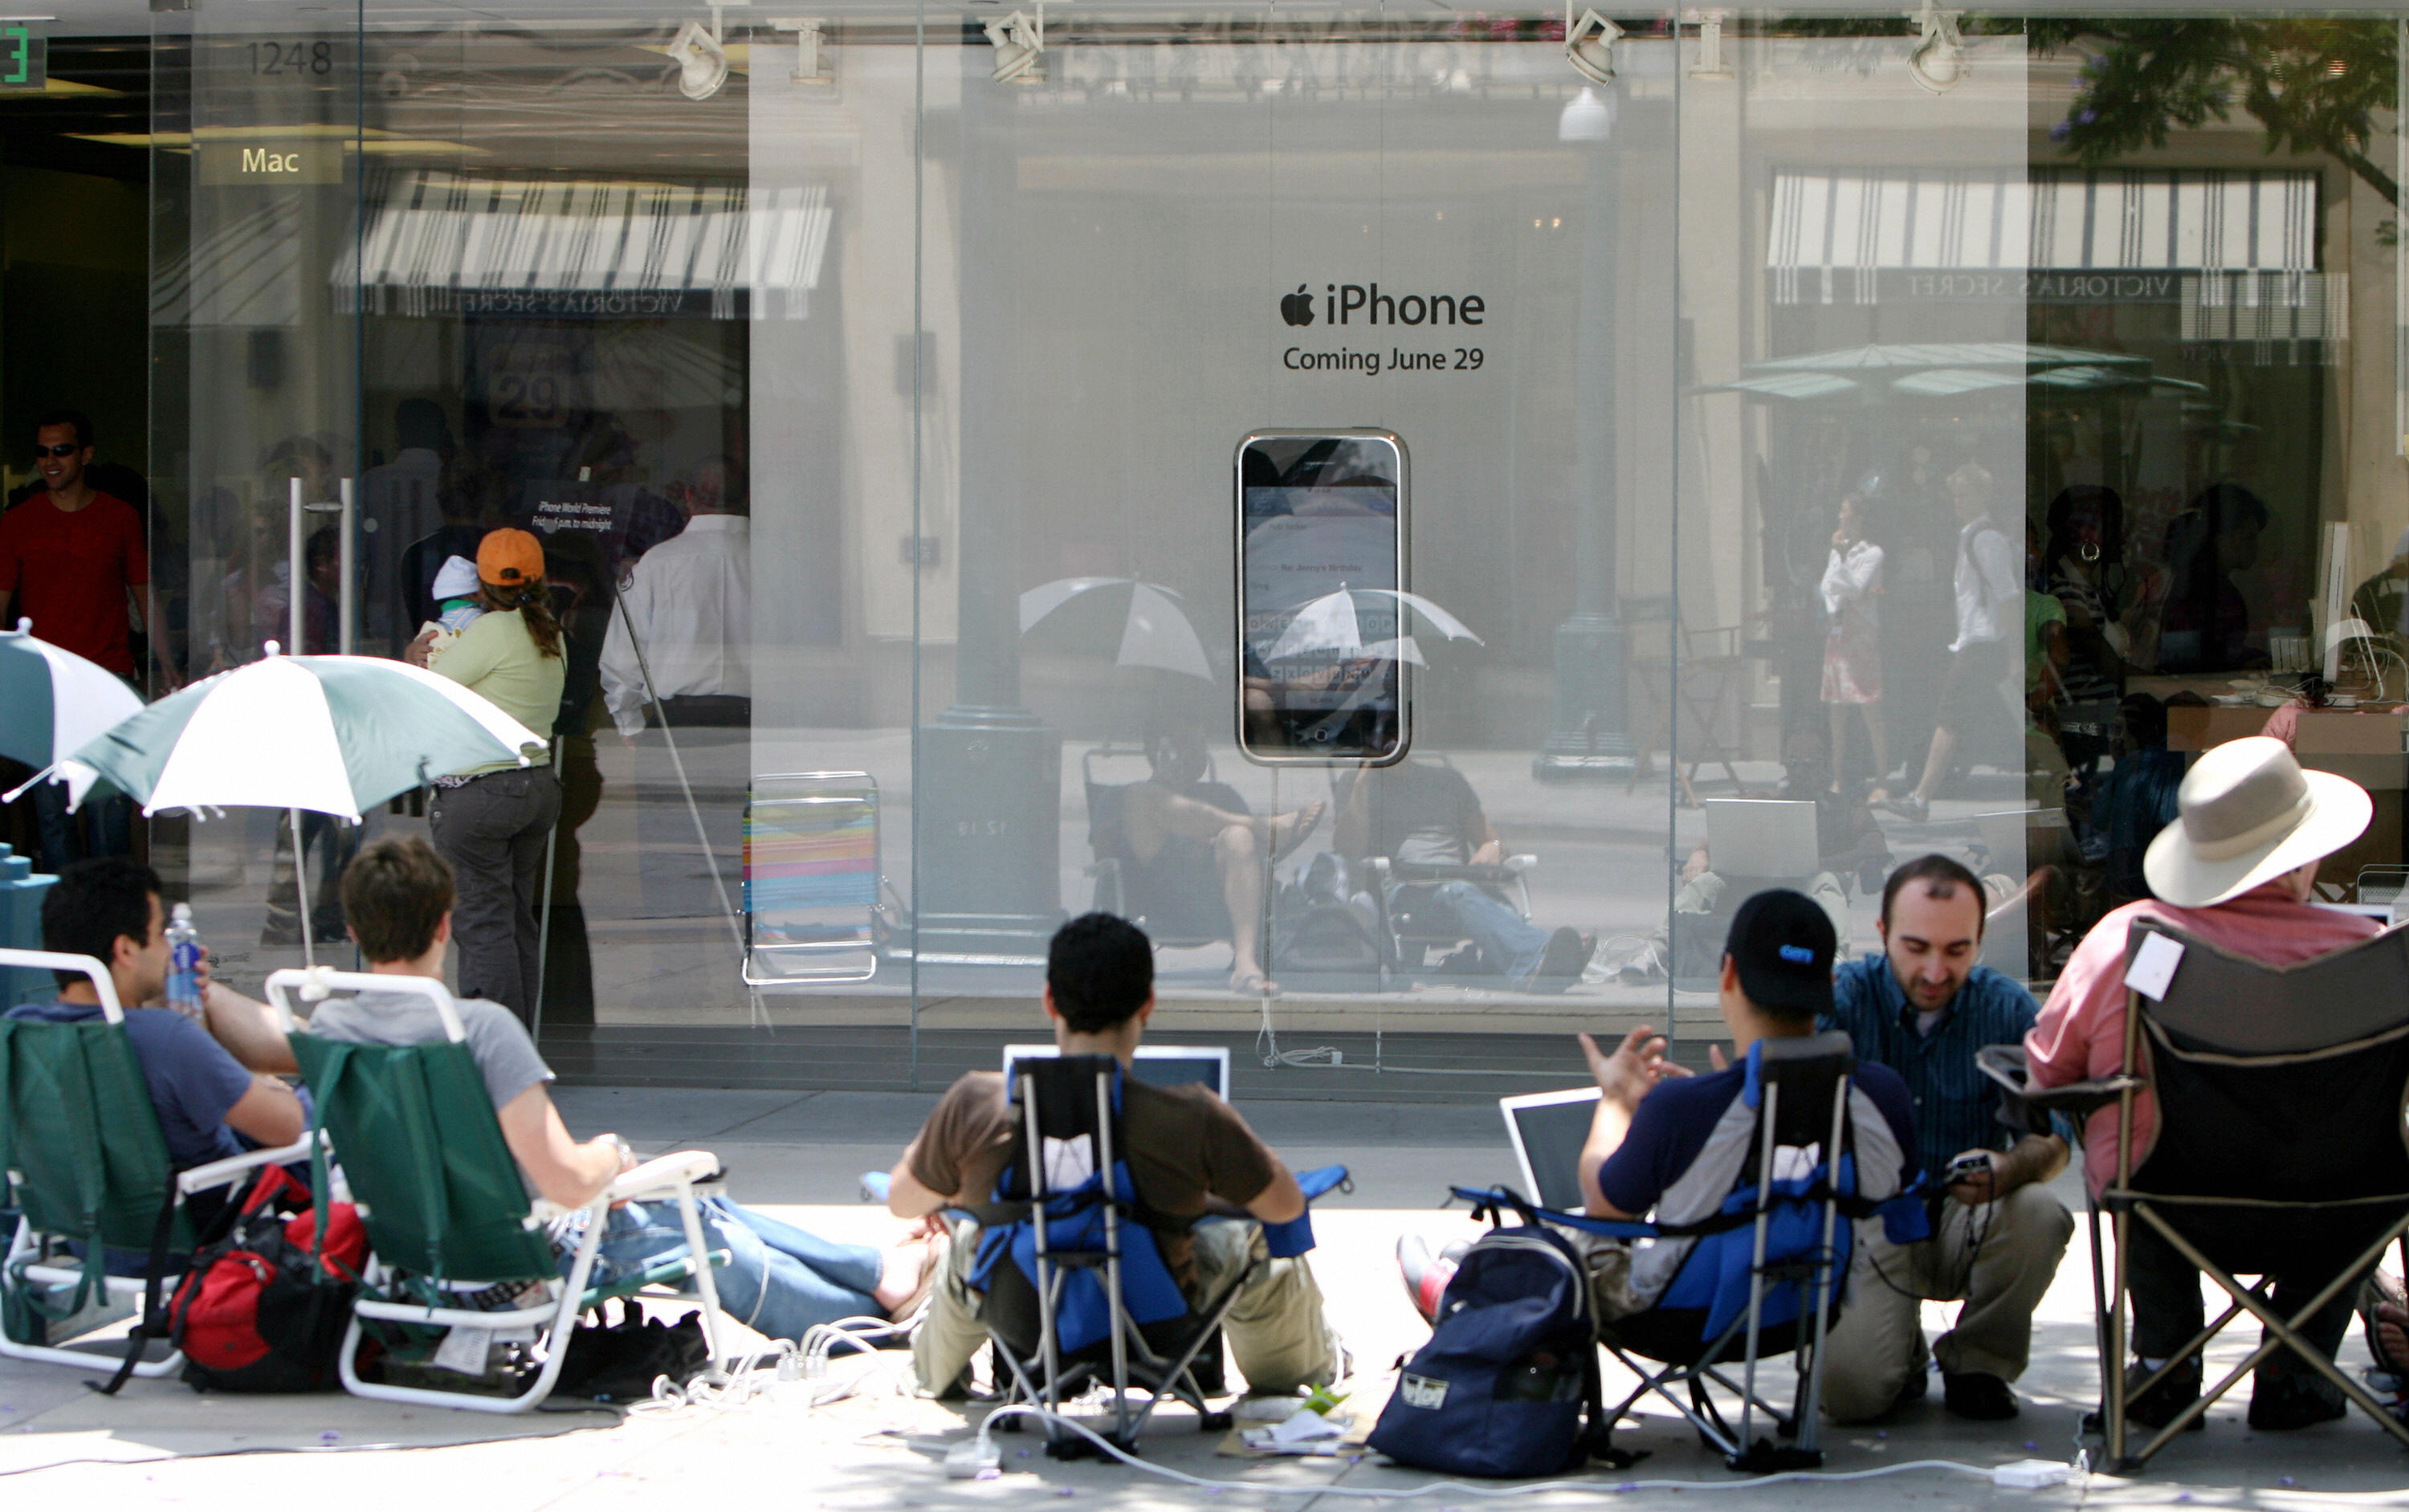 People wait outside an Apple store on  June 28, 2007, in Santa Monica, California for the iPhone, scheduled to be released at 6:00 pm the next day.